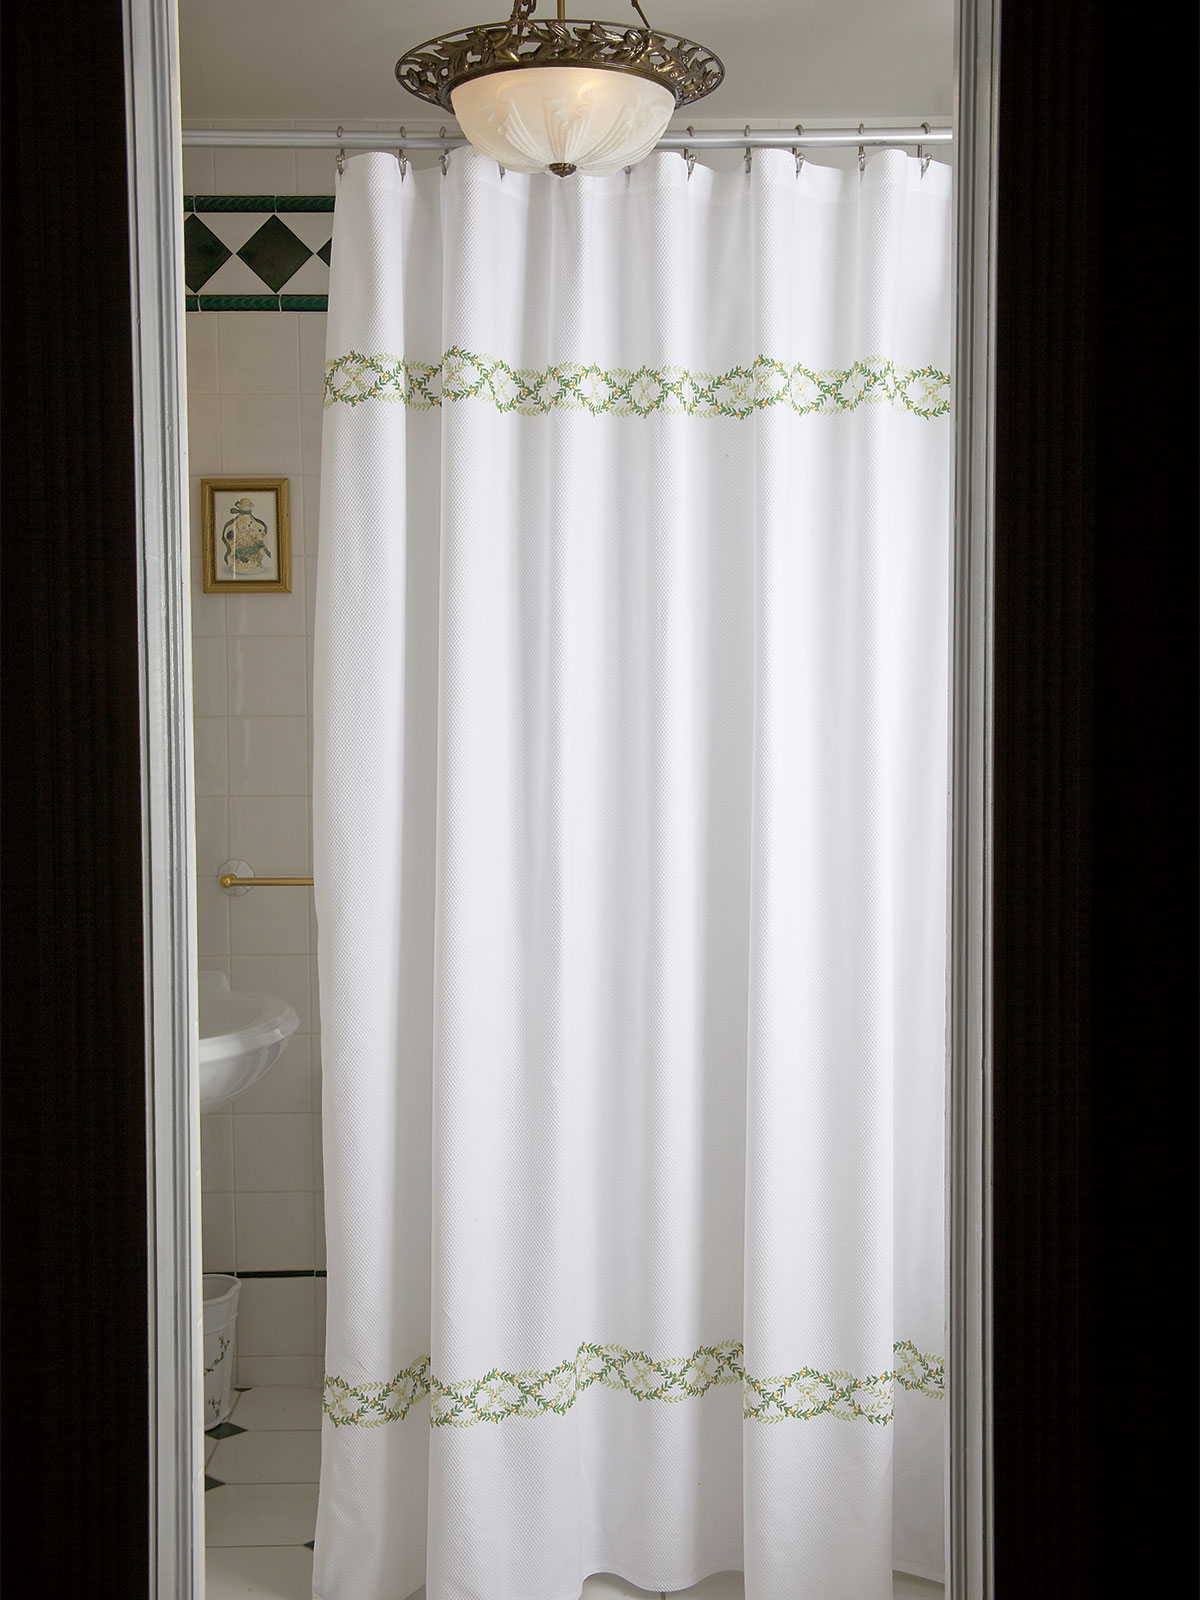 Gentil Arden Shower Curtain · Arden_Curtain_1568